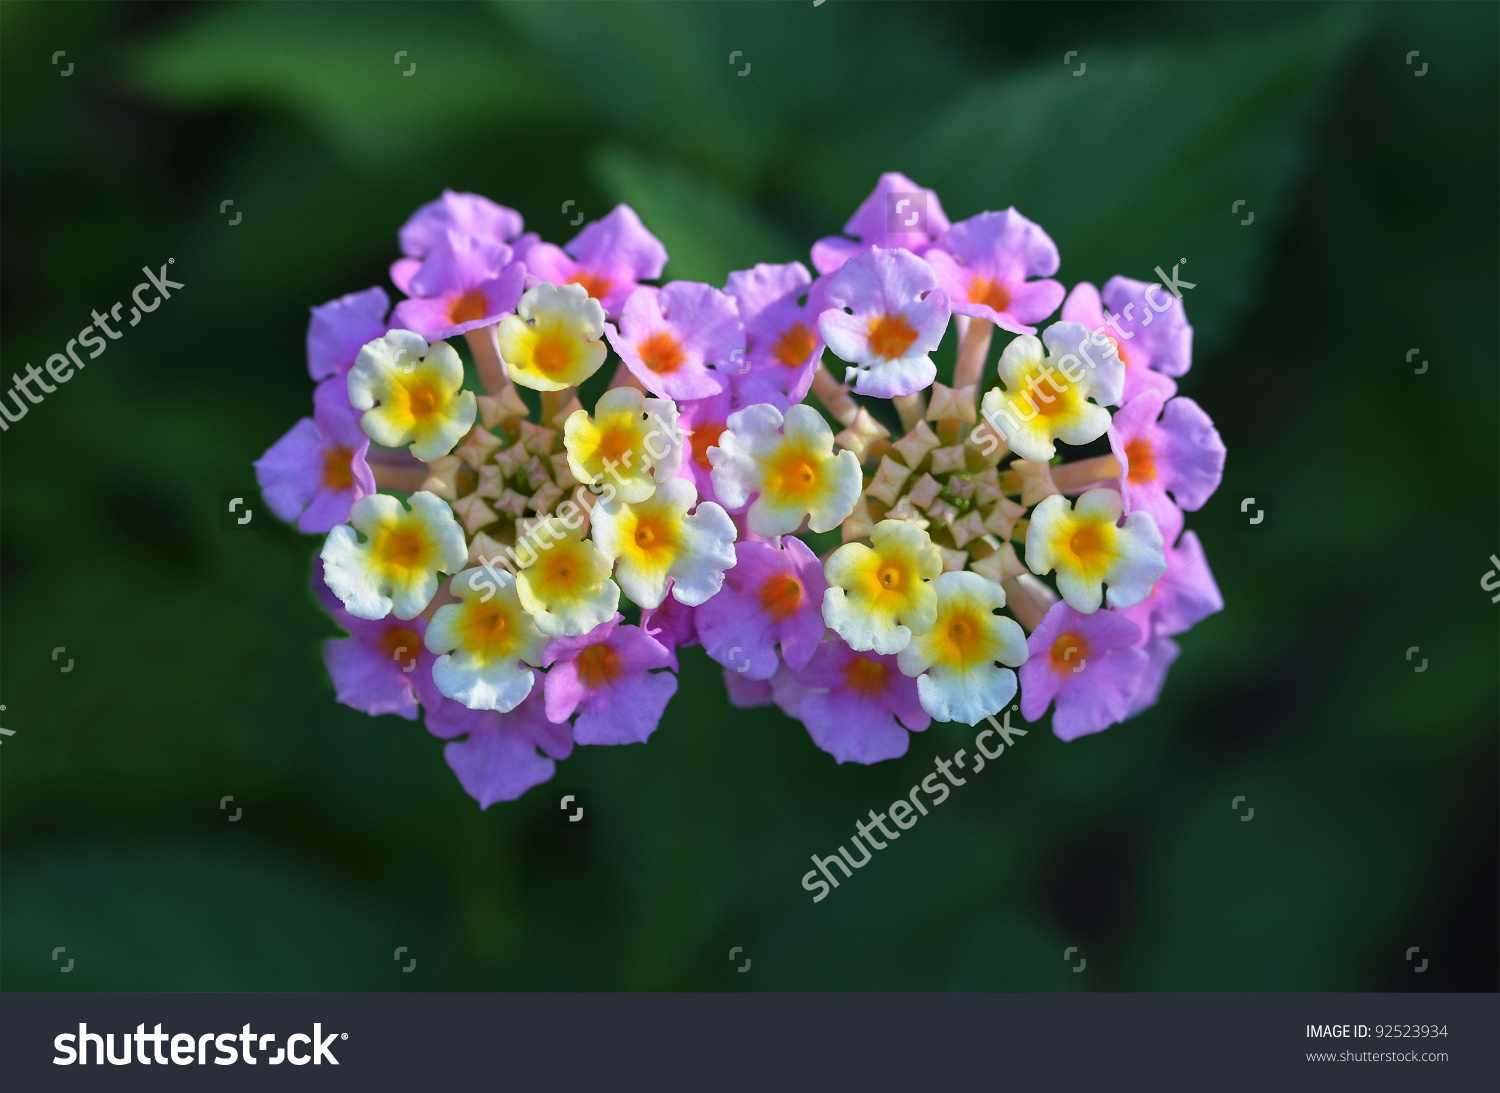 Verbena Flowers Stock Photo 92523934 : Shutterstock.